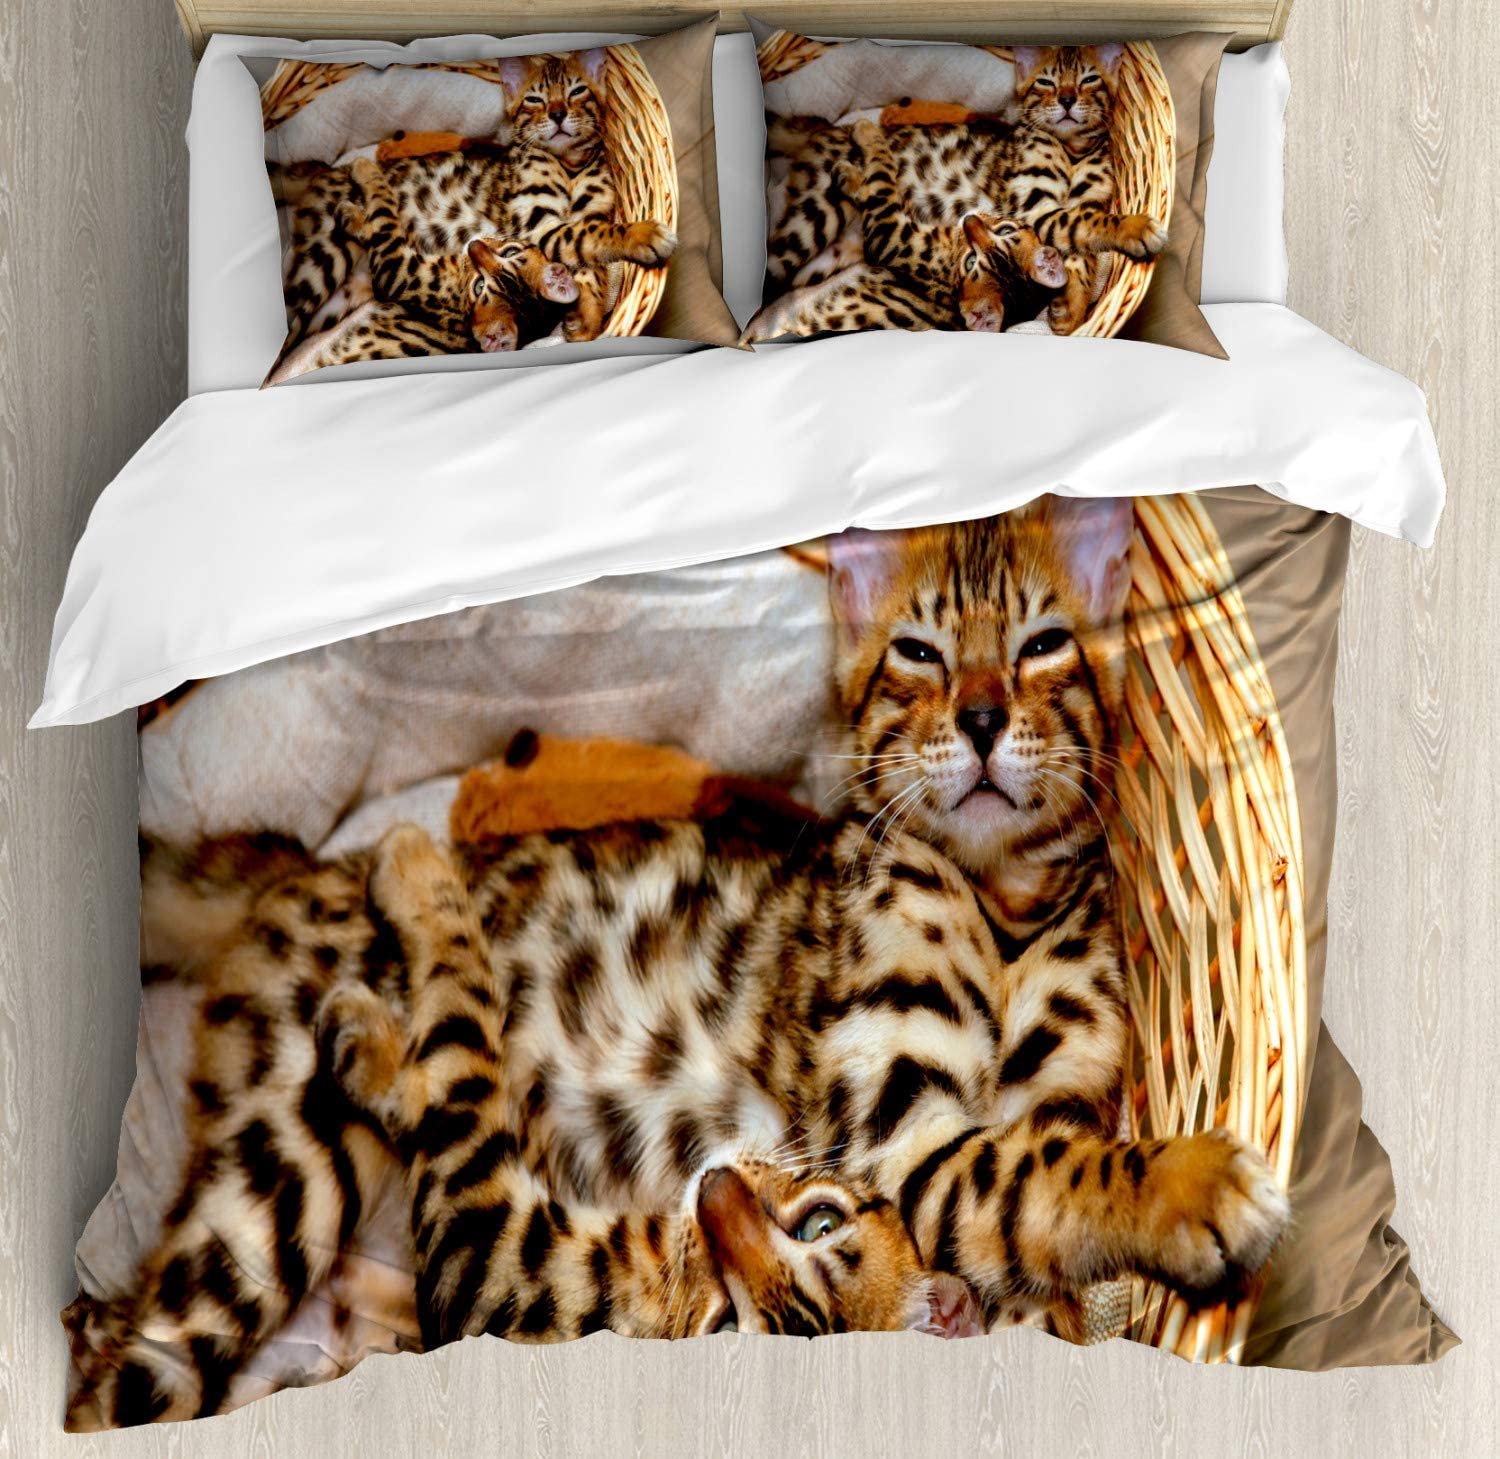 Amazon Com Ambesonne Kitten Duvet Cover Set Little Bengal Cats In Basket Cuddly Purebred Kitties Domestic Feline Decorative 3 Piece Bedding Set With 2 Pillow Shams King Size Brown Beige Home Kitchen